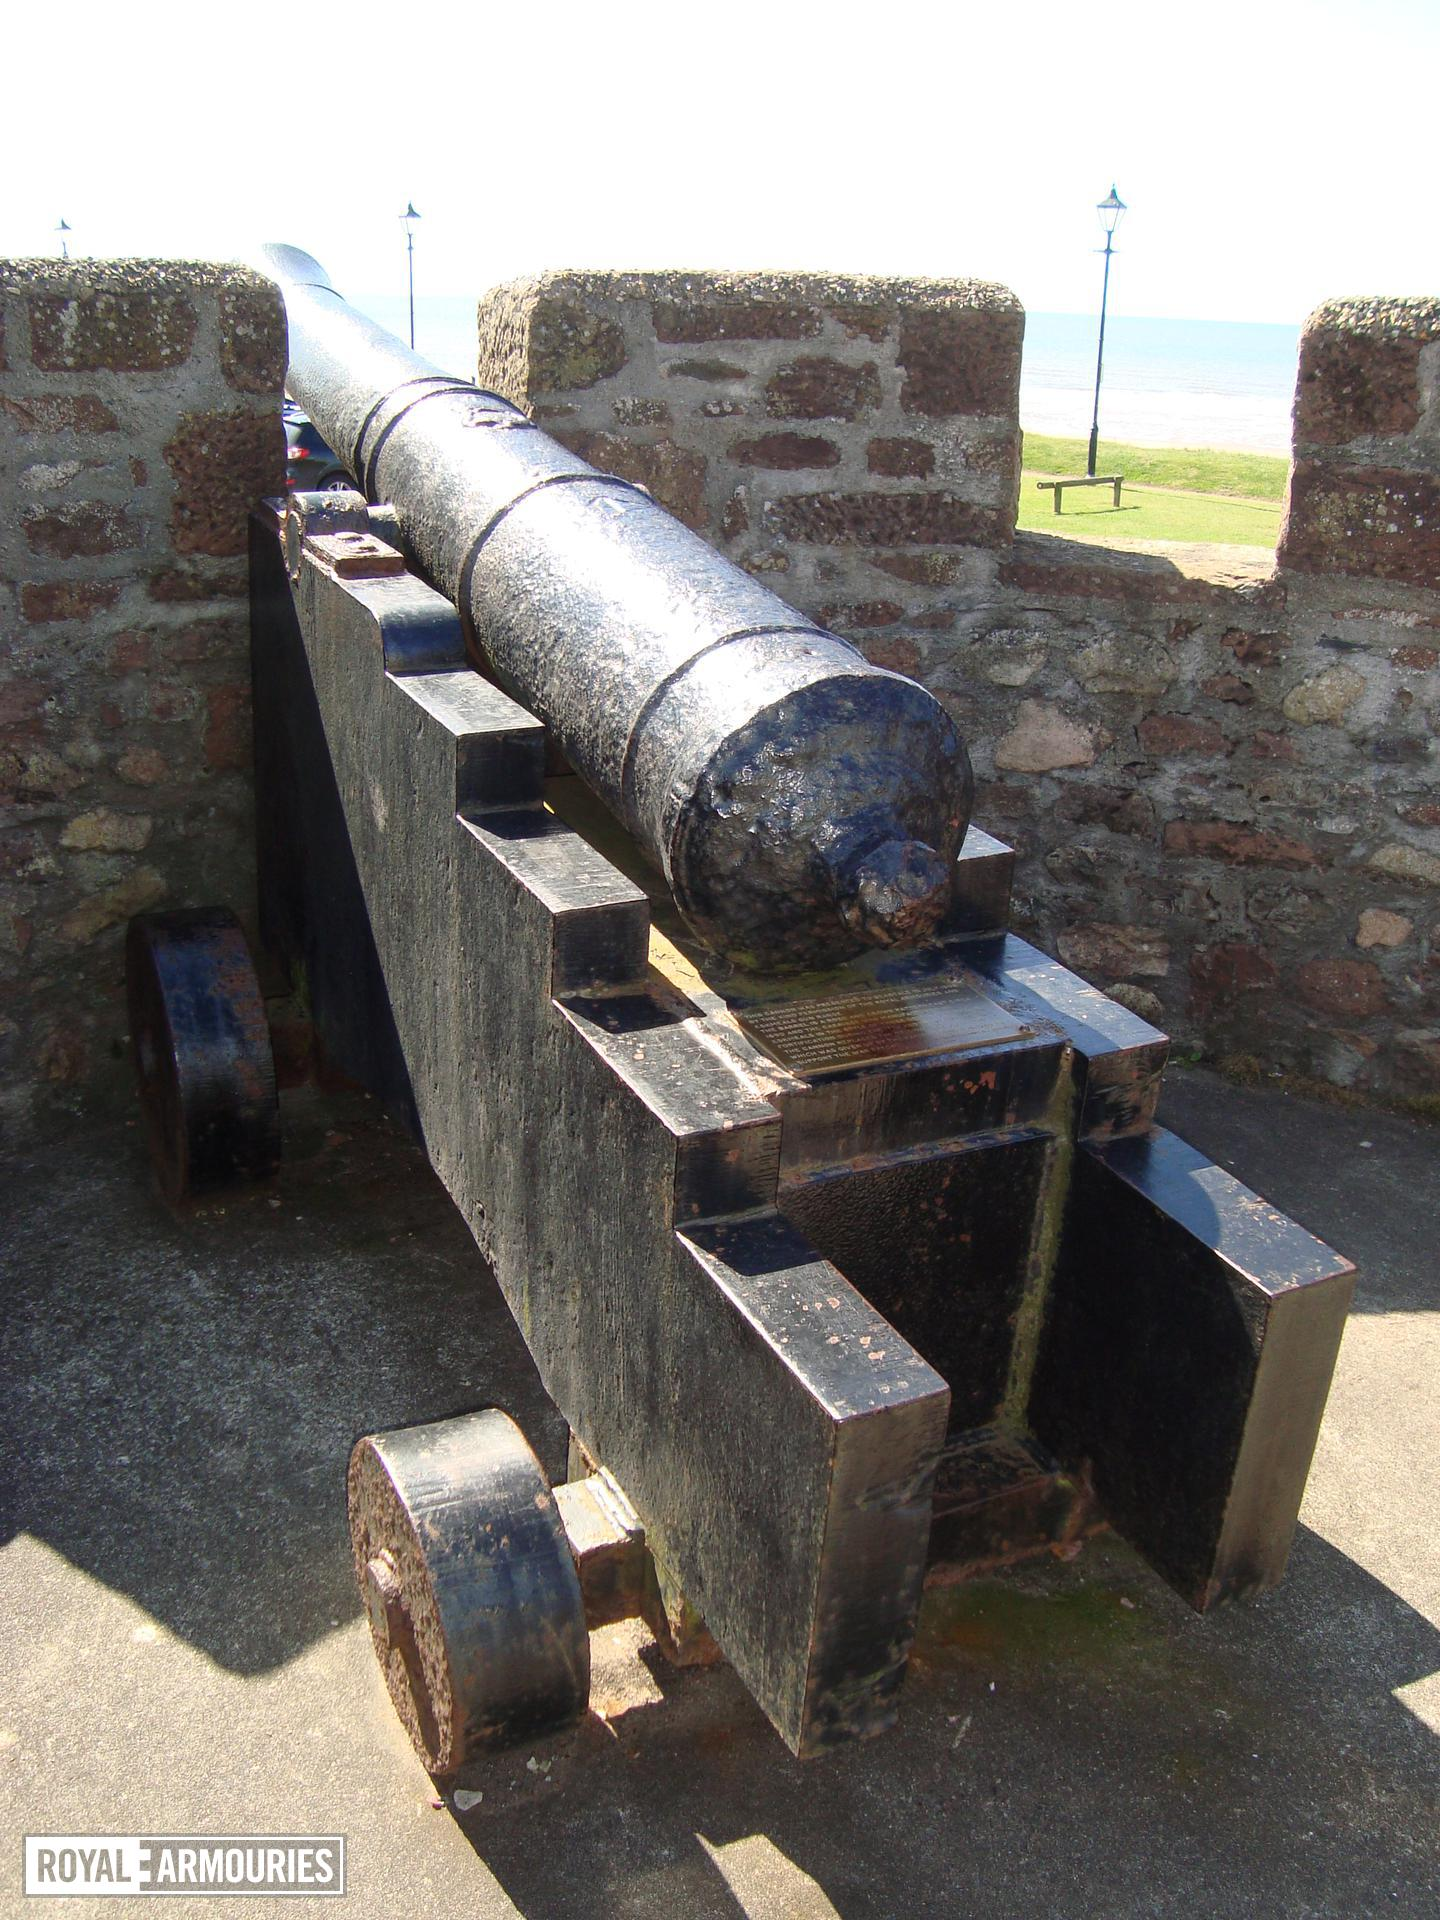 The gun on display at Seascale, Cumbria.